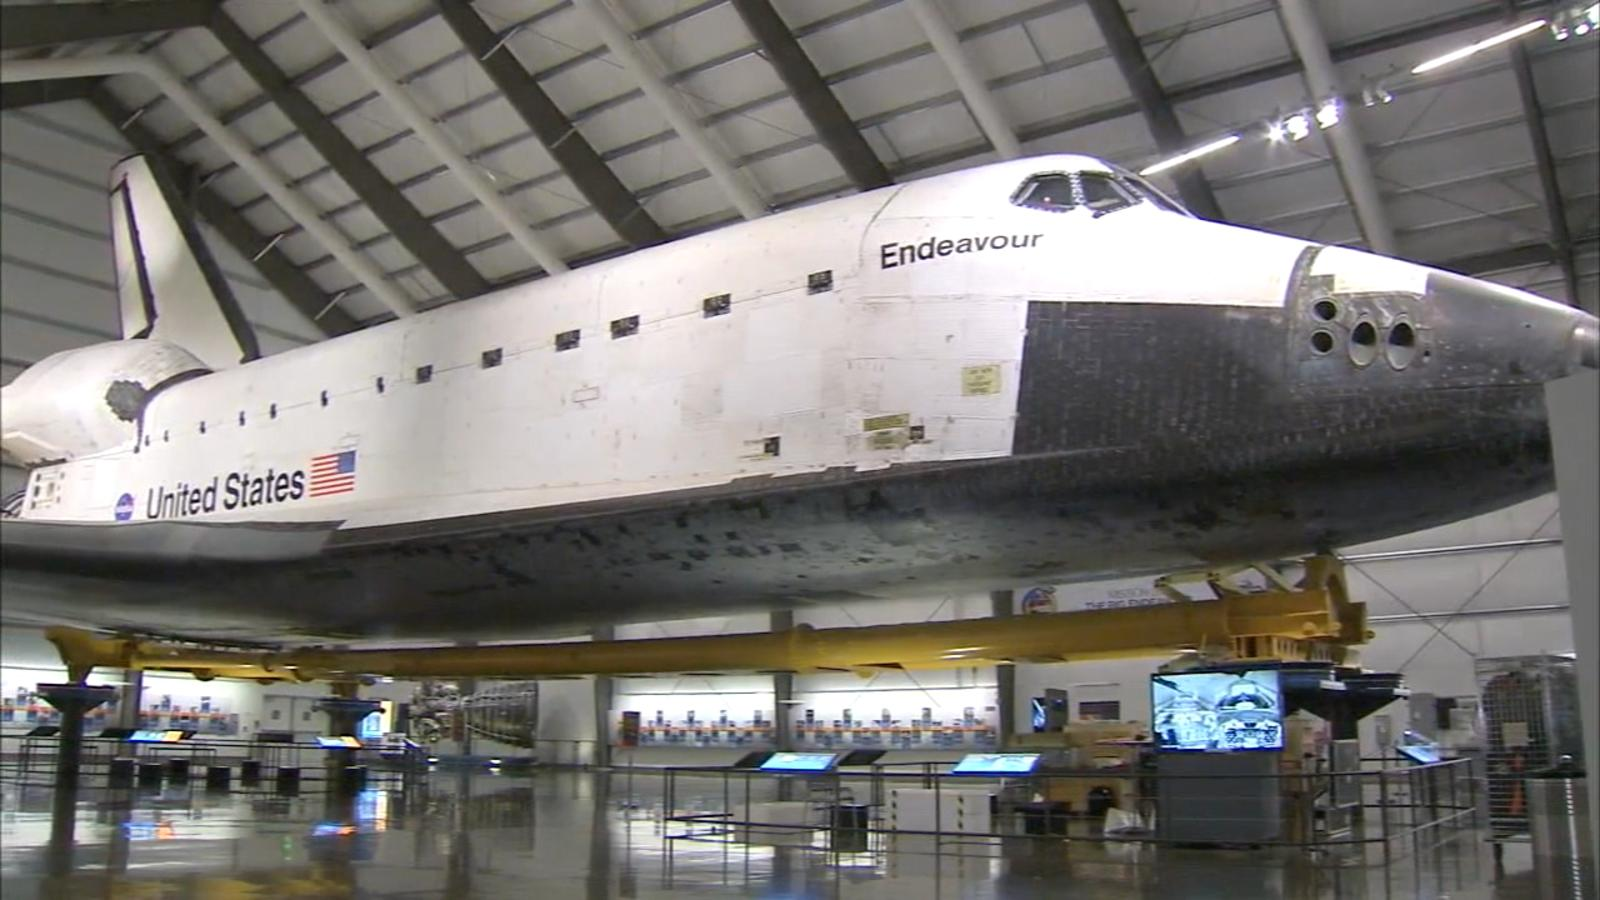 Space Shuttle Endeavour Videos at ABC News Video Archive at